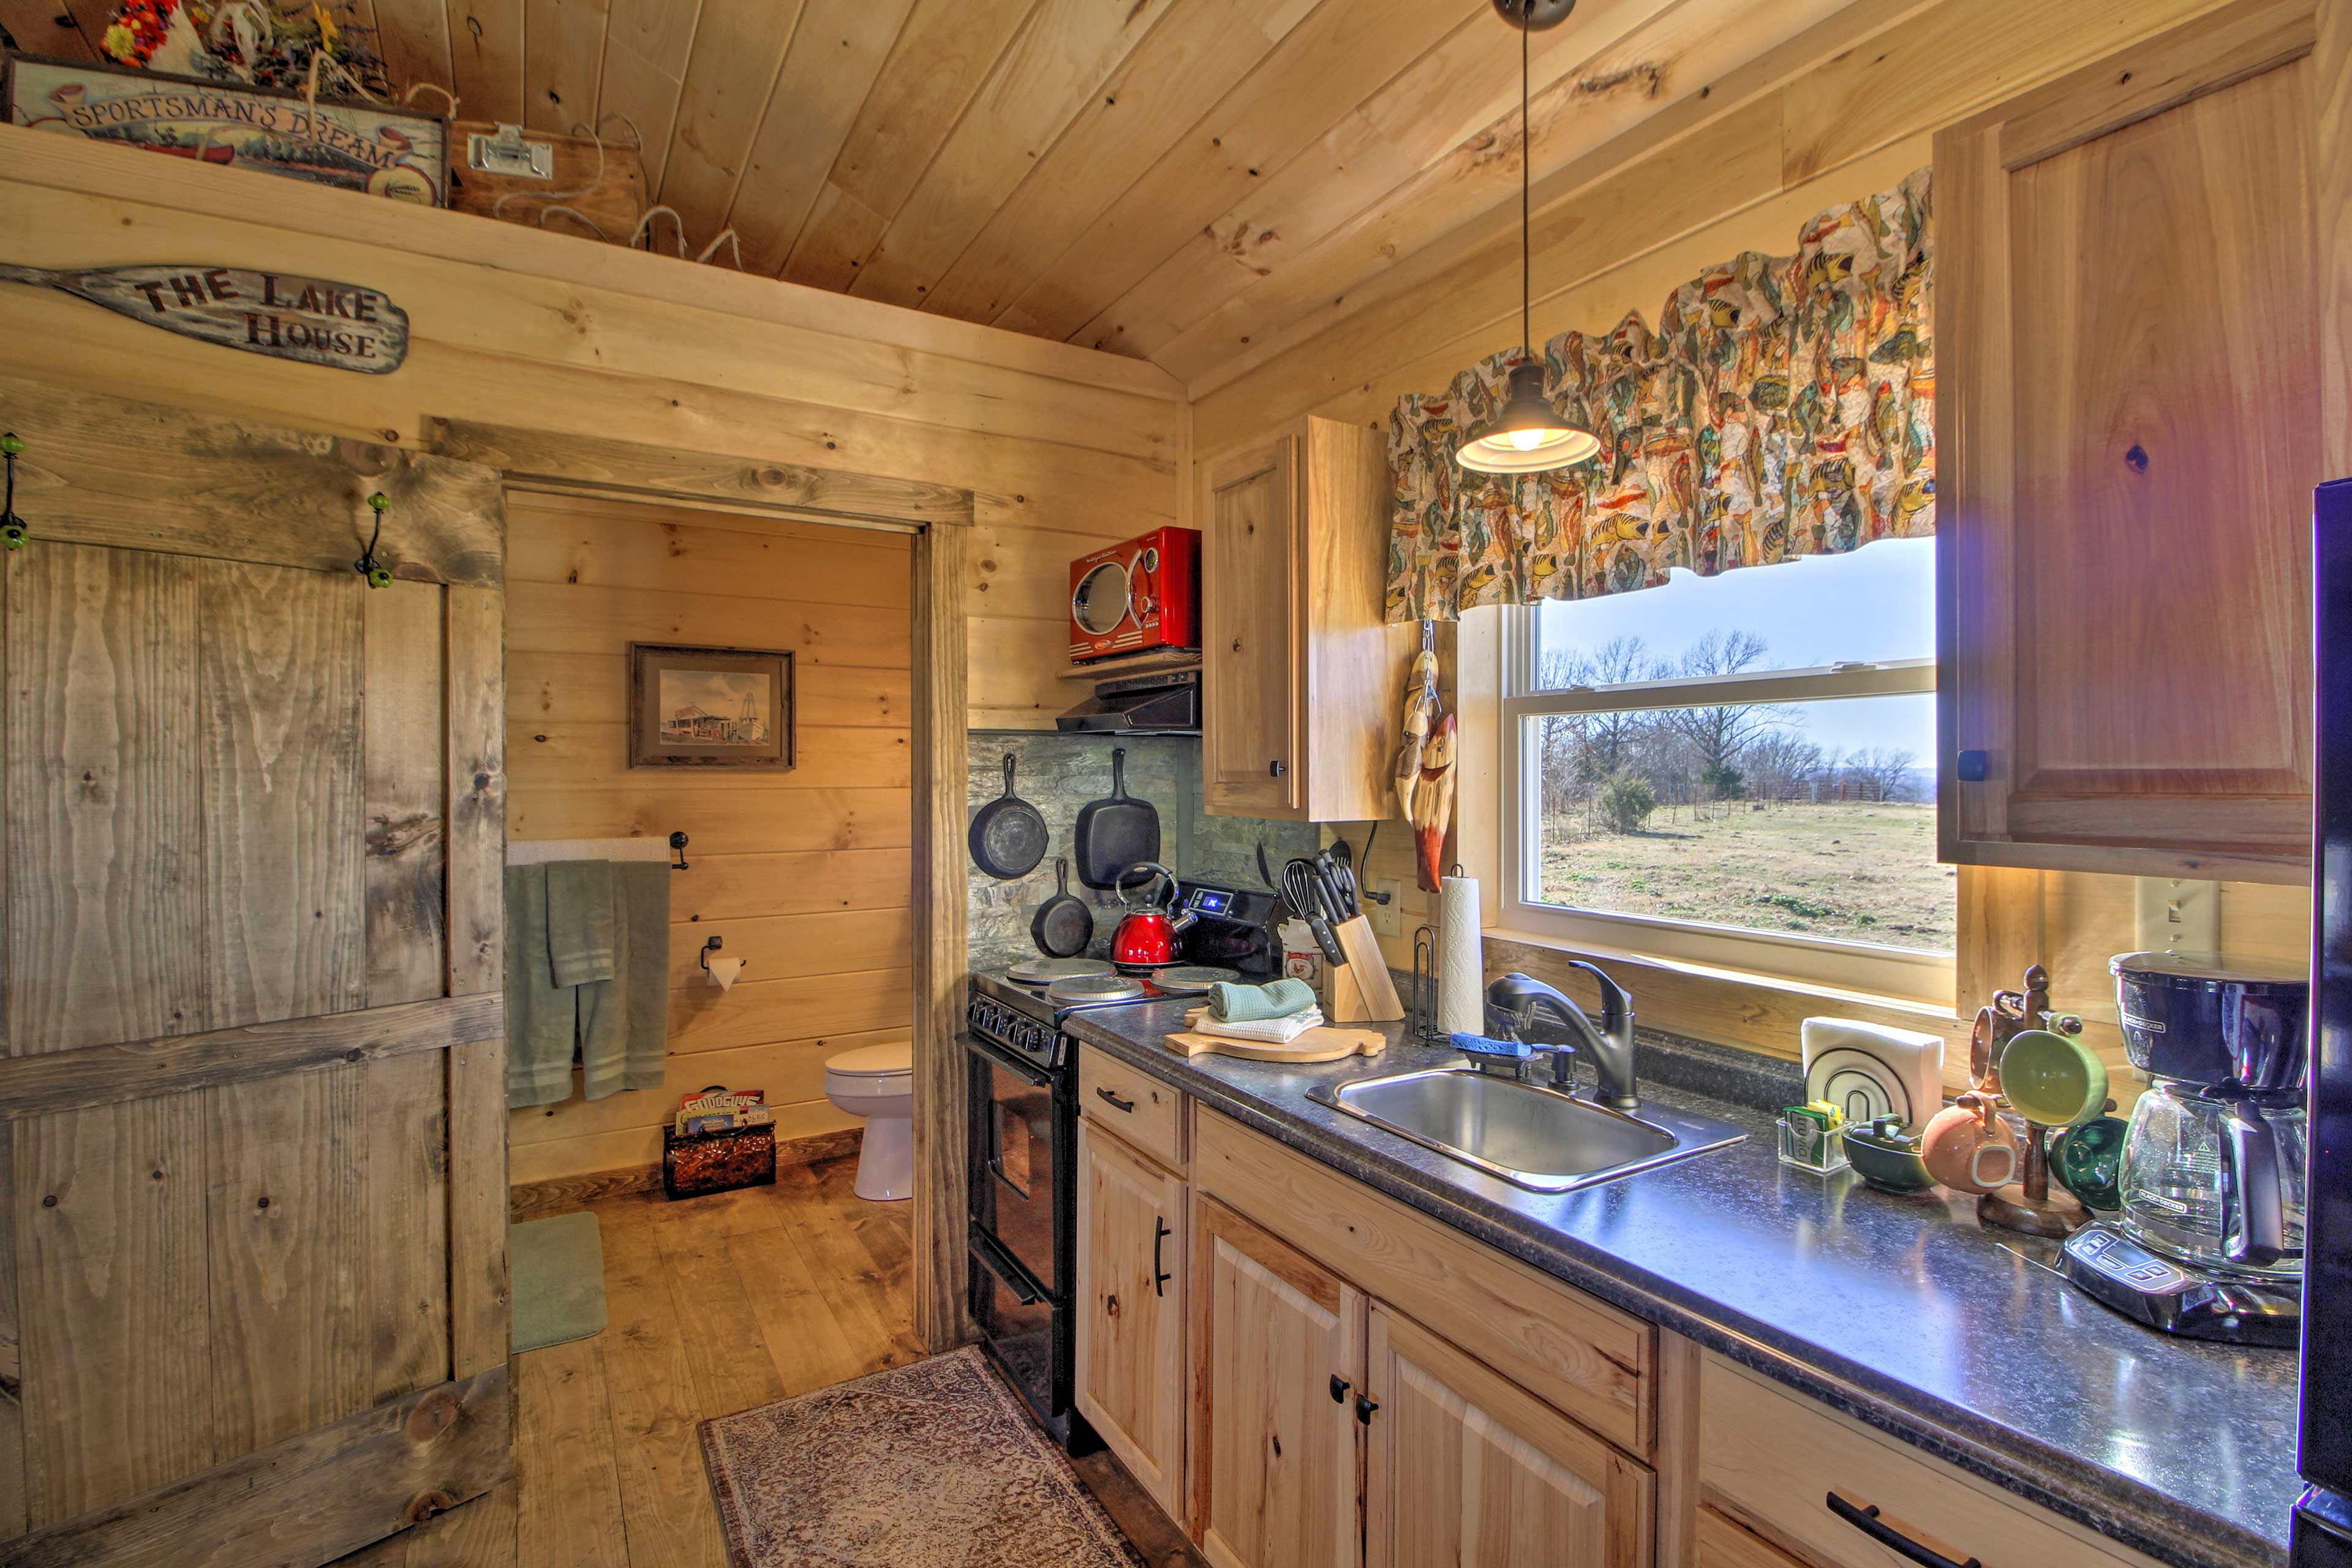 The kitchen is well-equipped so you can enjoy your favorite meals while away.